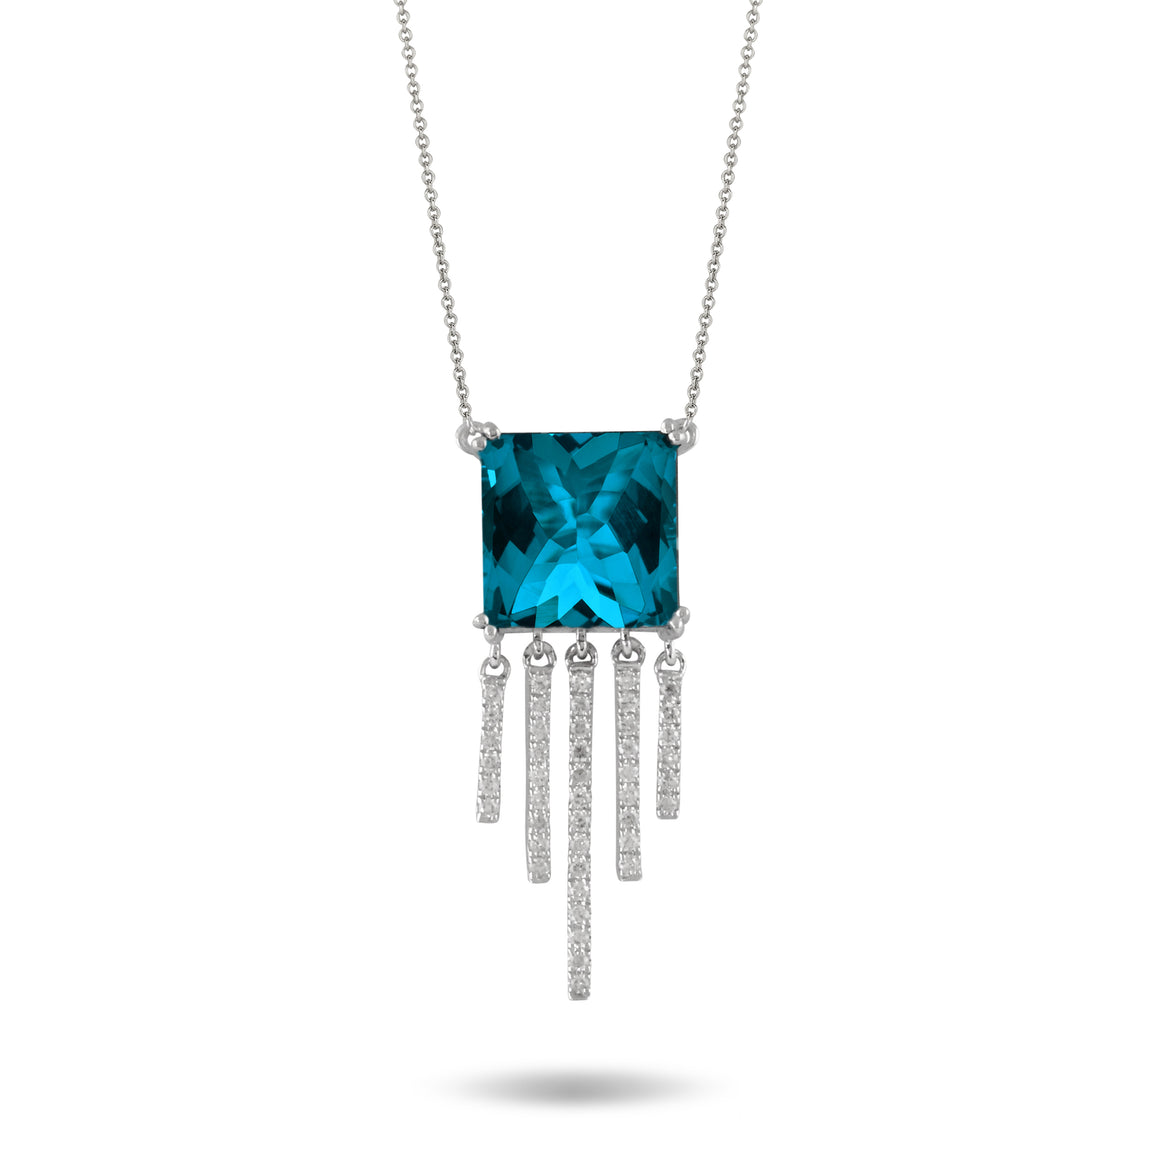 18k White Gold London Blue Topaz and Diamond Fringe Necklace